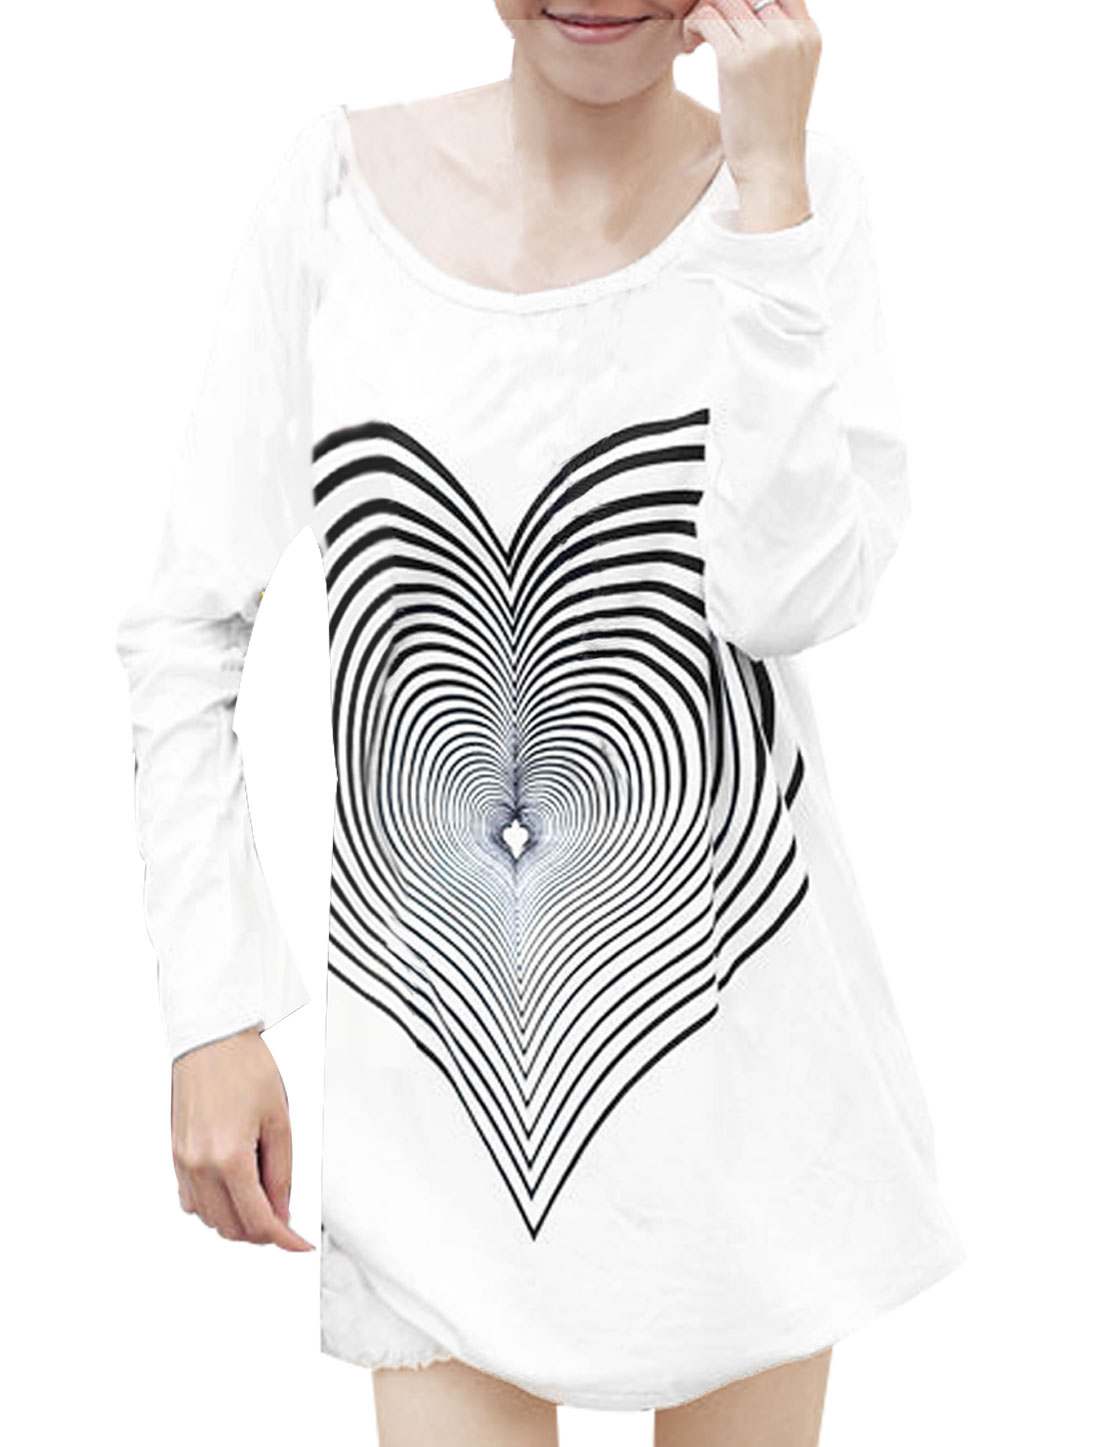 Lady White Scoop Neck Long Sleeve Hearts Design Casual Tunic Shirt XS